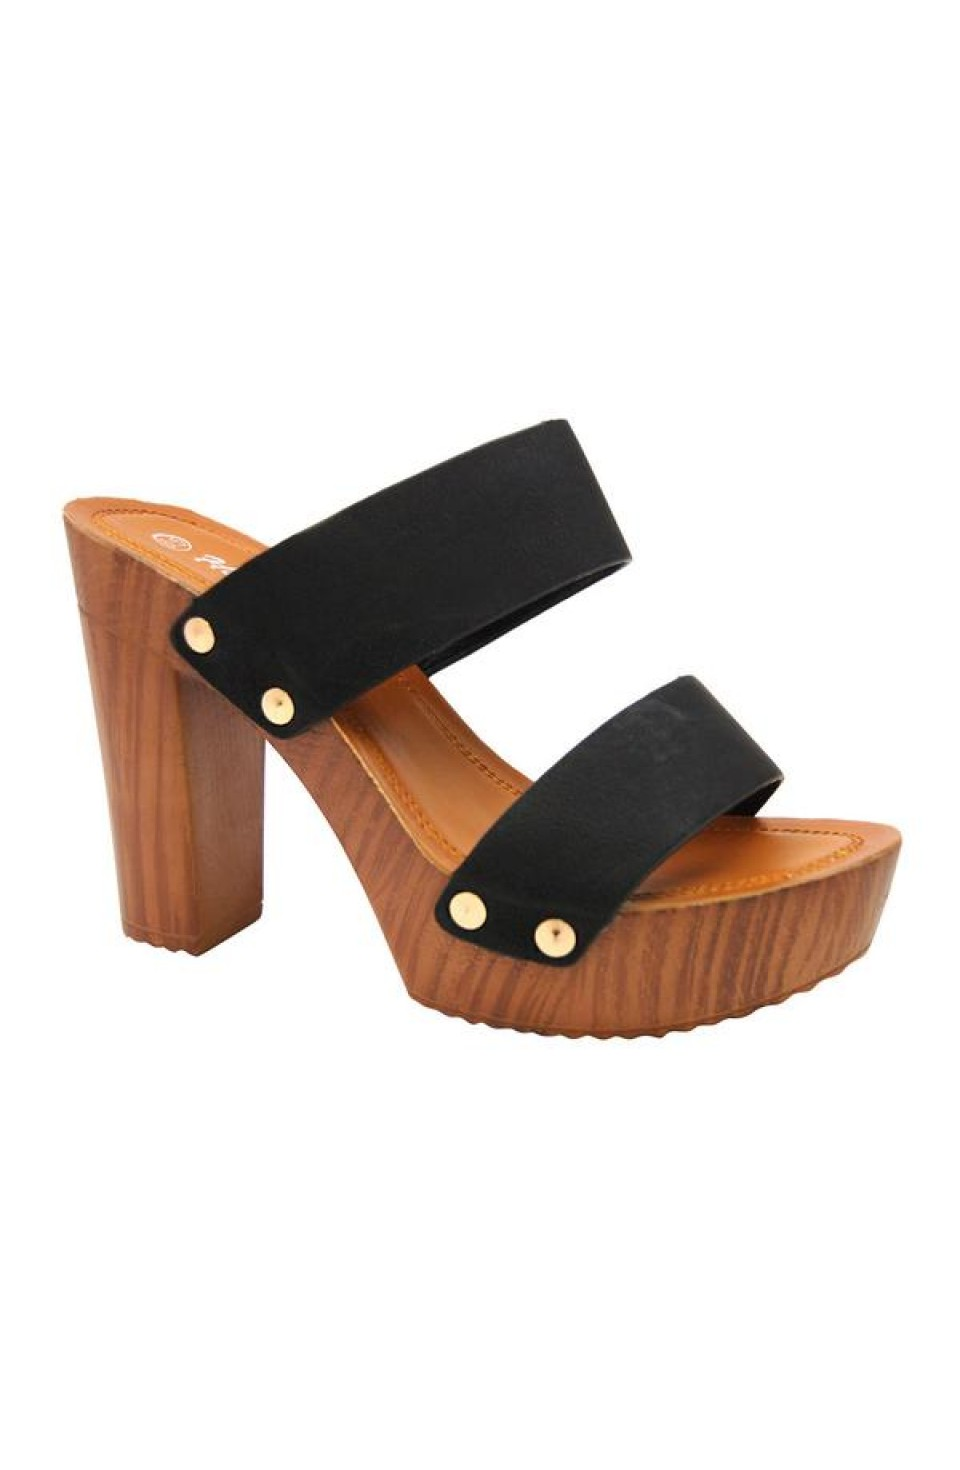 Women's Black Manmade Klaaree 4-inch Faux Wood Sandal with Gold-Tone Studs